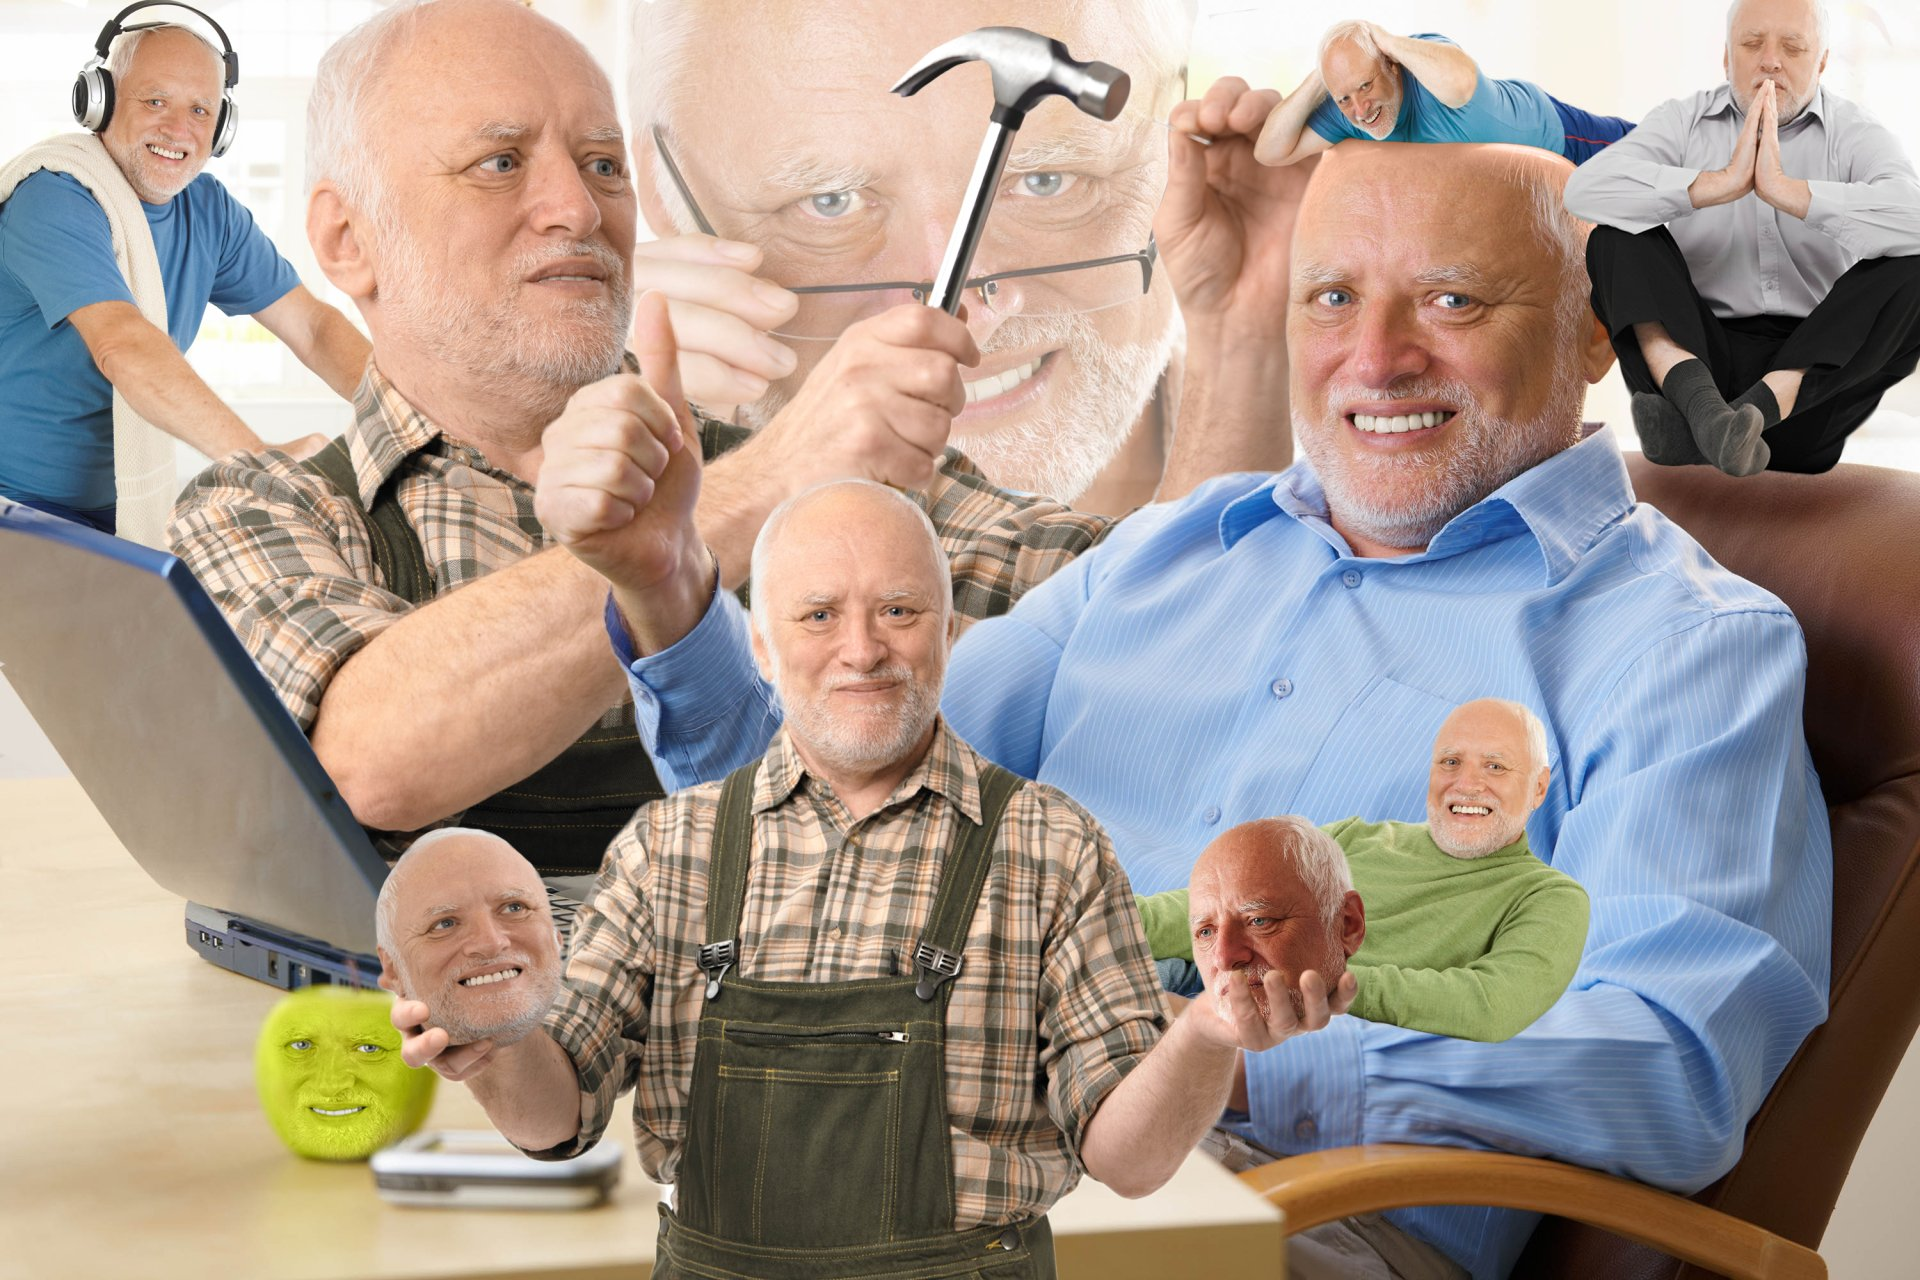 1 Hide The Pain Harold Hd Wallpapers Background Images